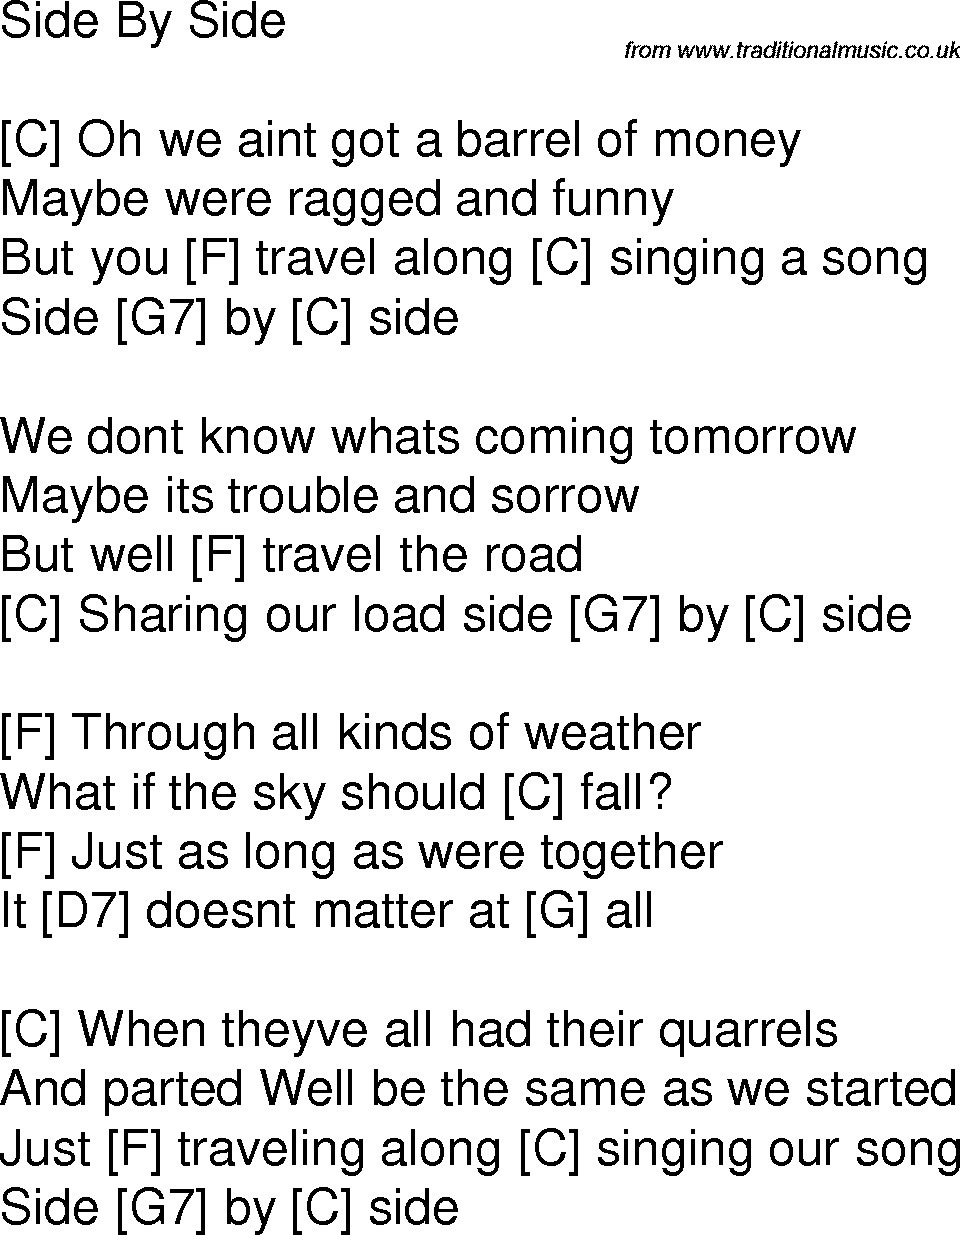 Old Time Song Lyrics With Chords For Side By Side C Mother